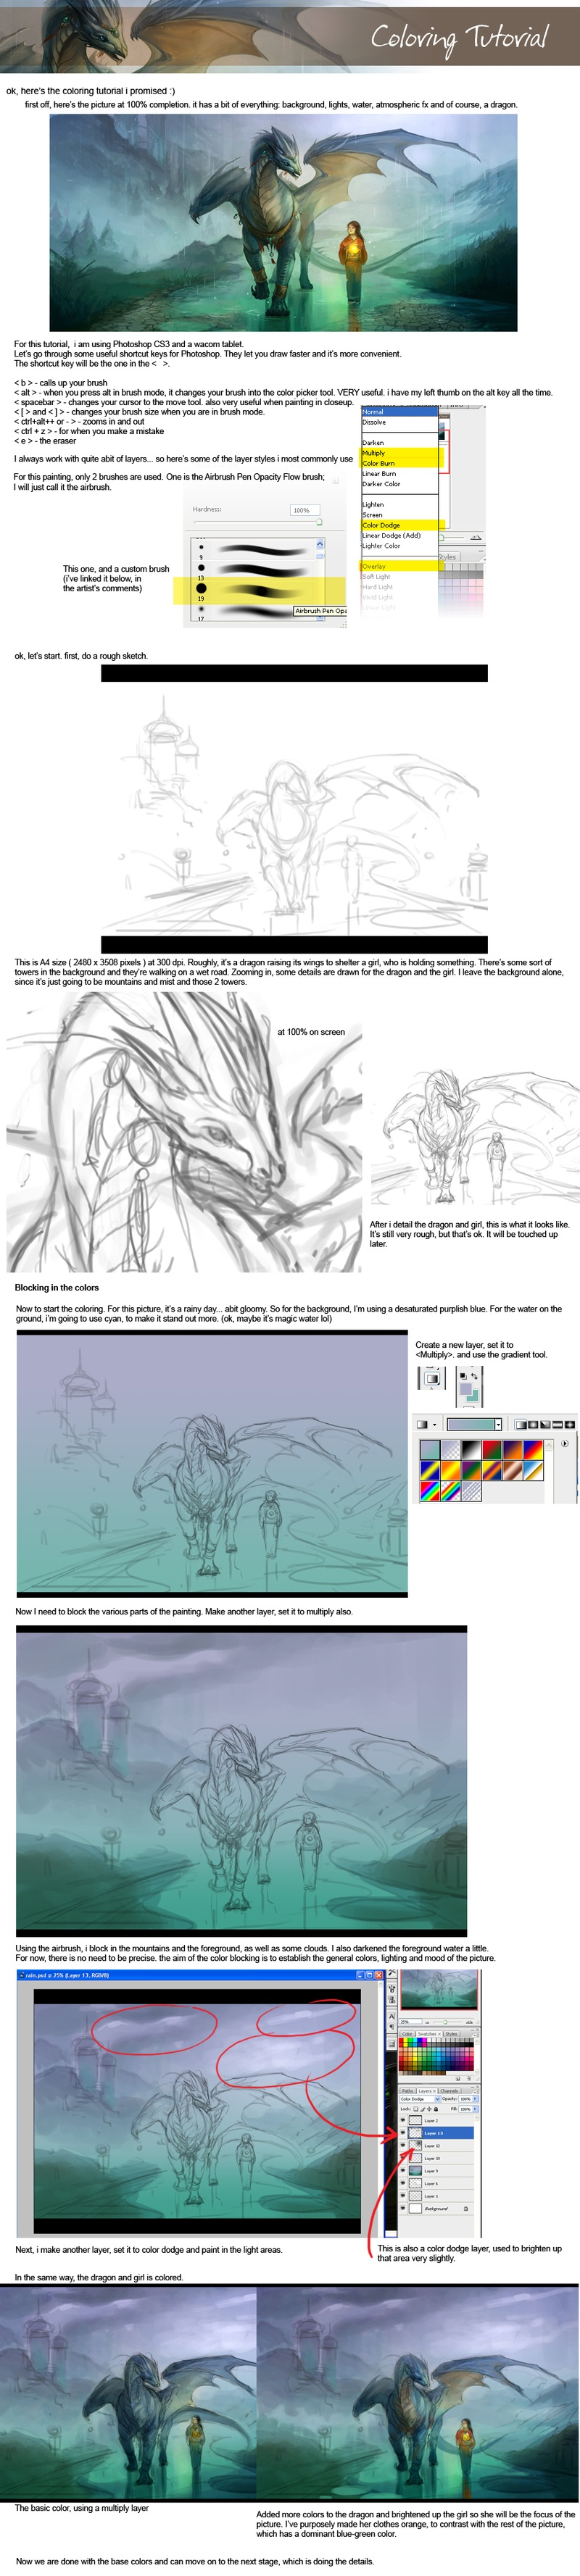 How To Draw Anime Anime Dragon And A Little Girl Tutorial With Photoshop